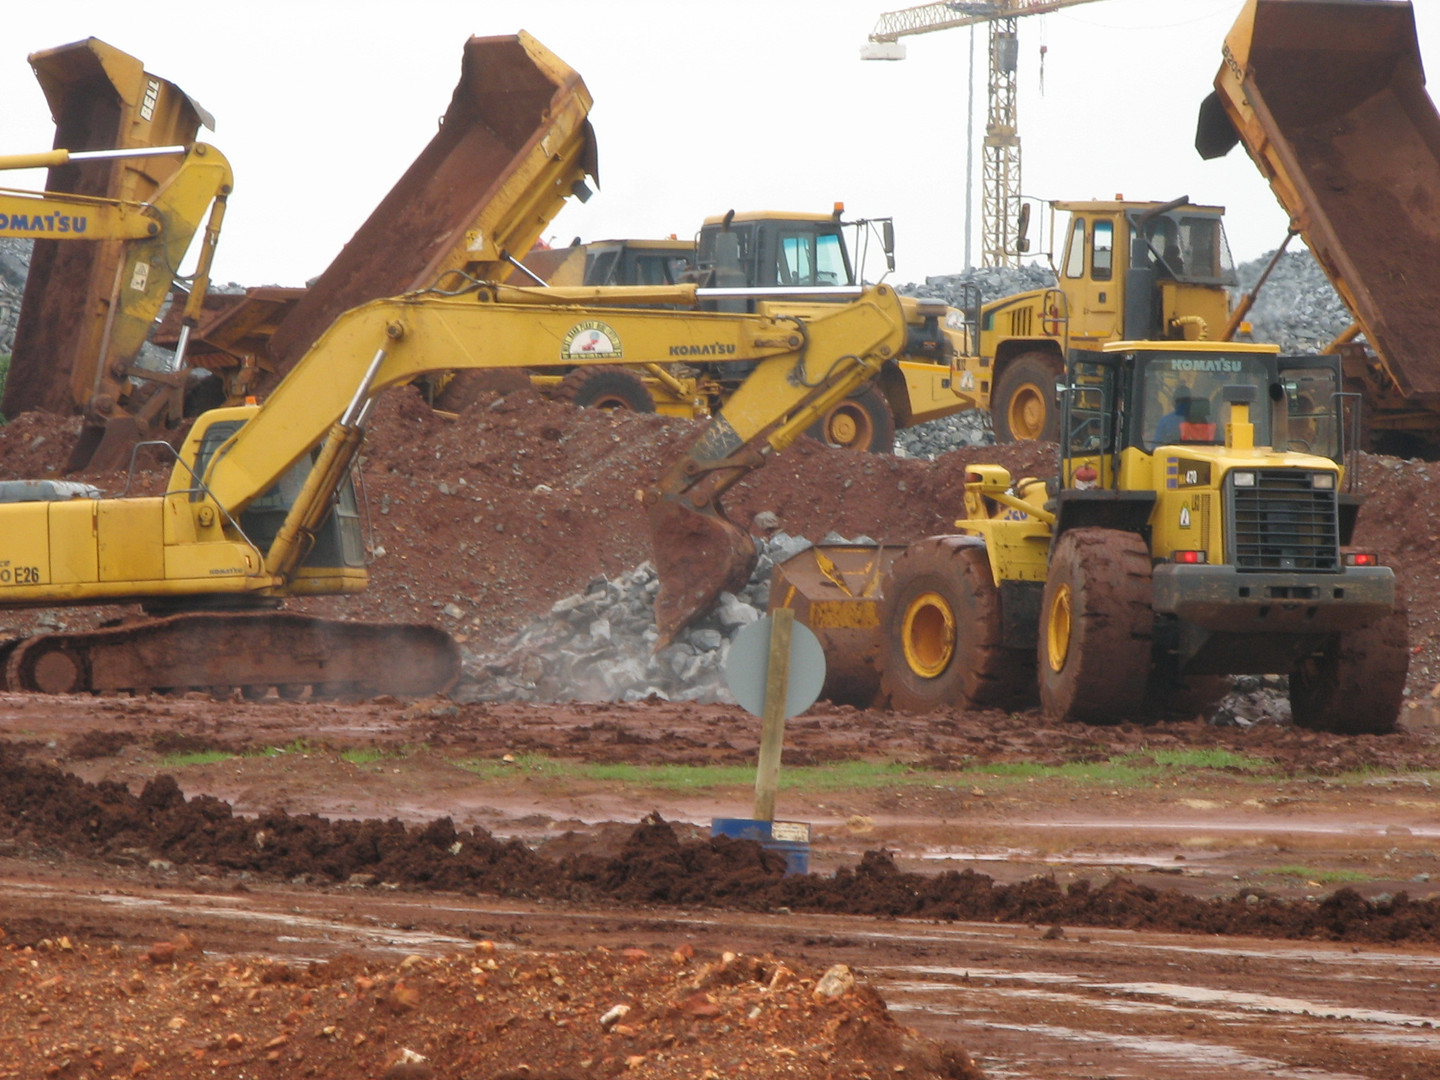 West Rand Plant Hire - Civils Komatsu Excavator and Loader